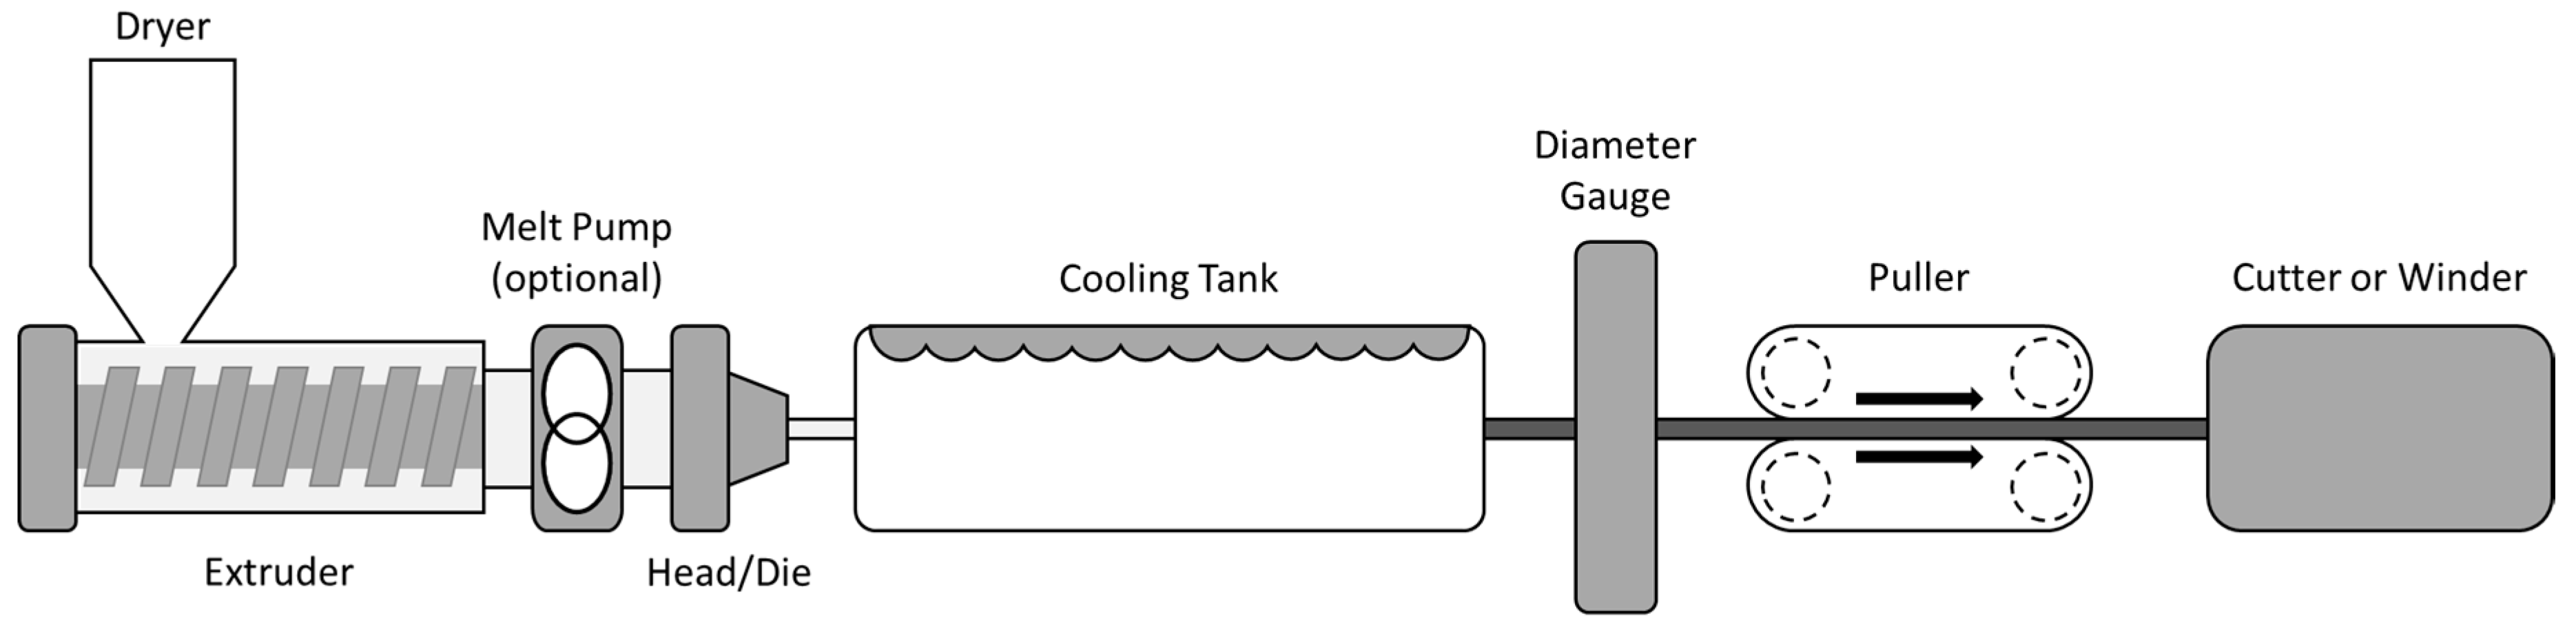 Coatings   Free Full-Text   Fused Deposition Modelling as a